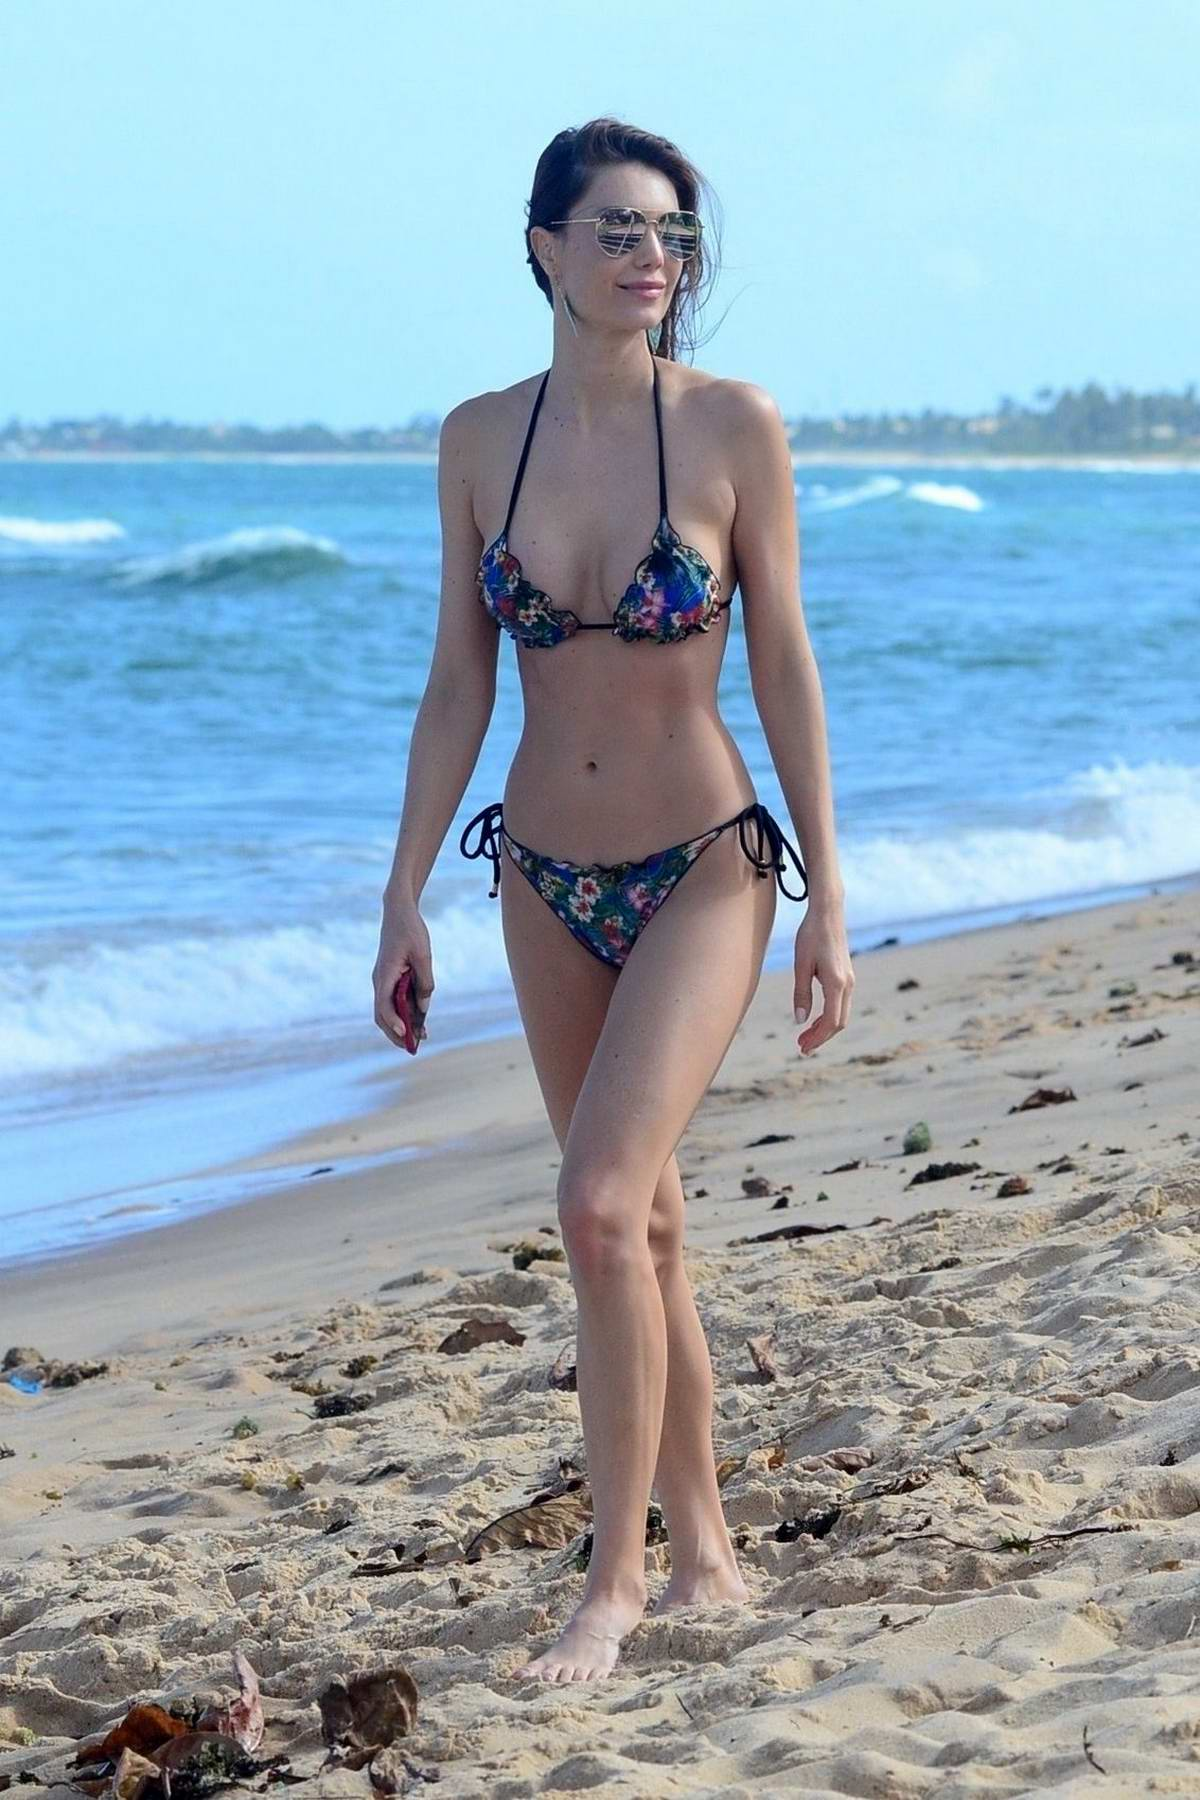 Julia Pereira hits the beach in a blue floral print bikini in Bahia, Brazil